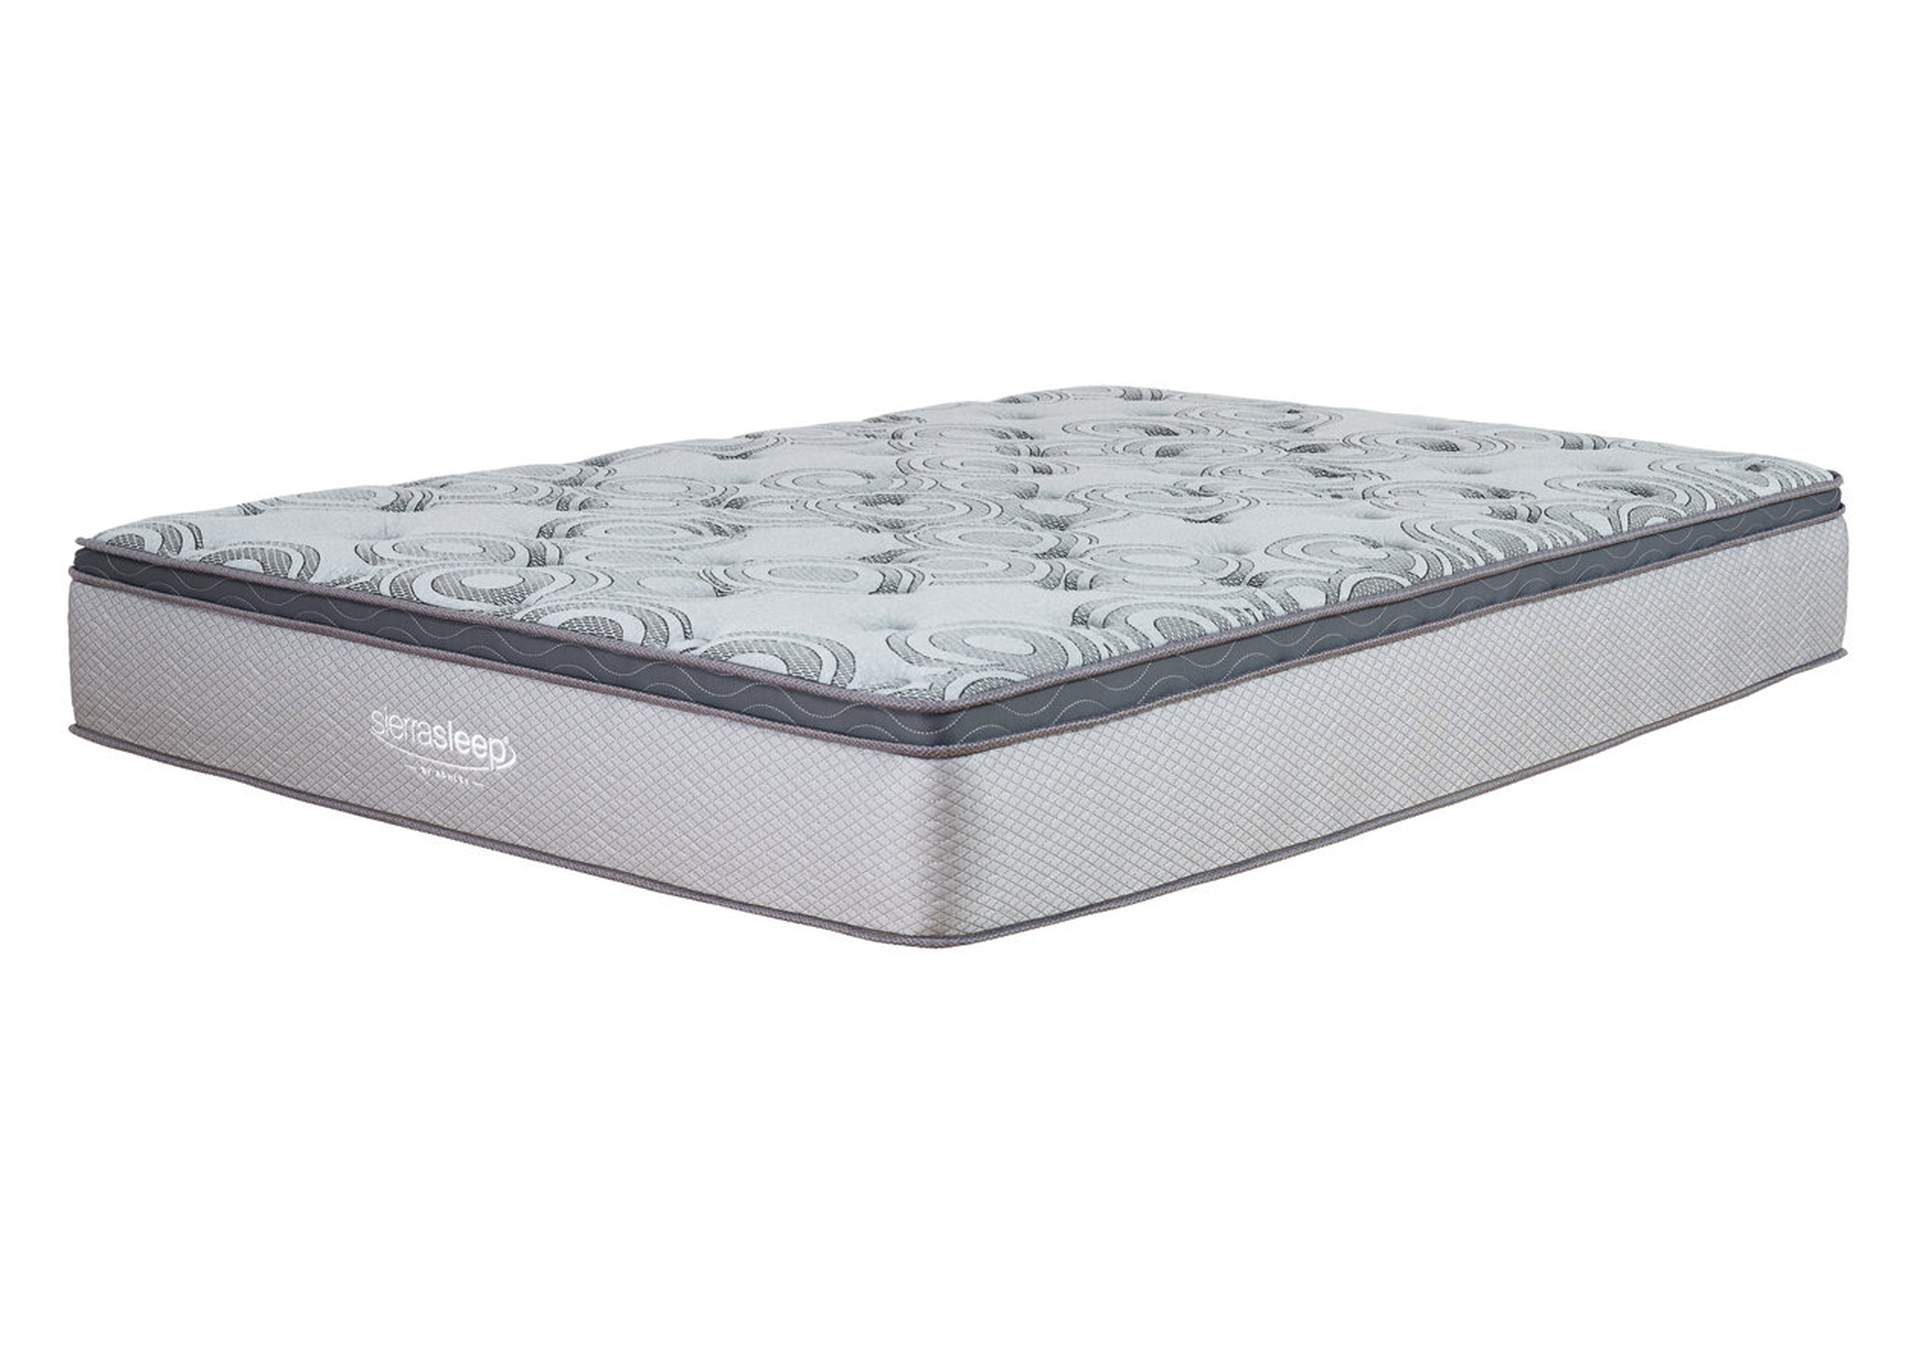 Augusta White King Mattress,Sierra Sleep by Ashley